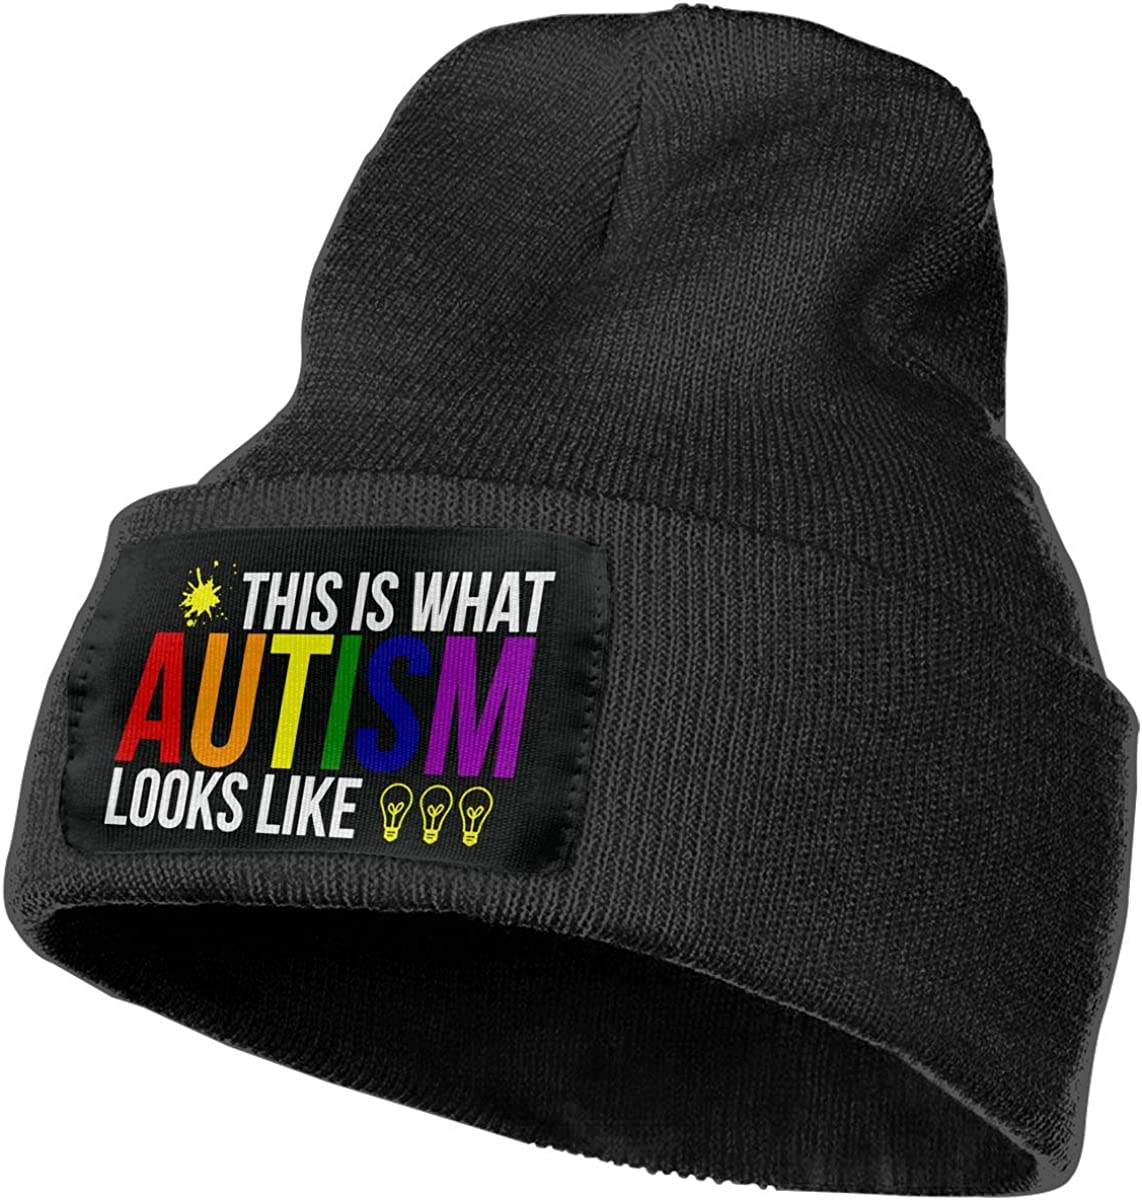 Men//Women This is What Autism Looks Like Outdoor Warm Knit Beanies Hat Soft Winter Skull Caps